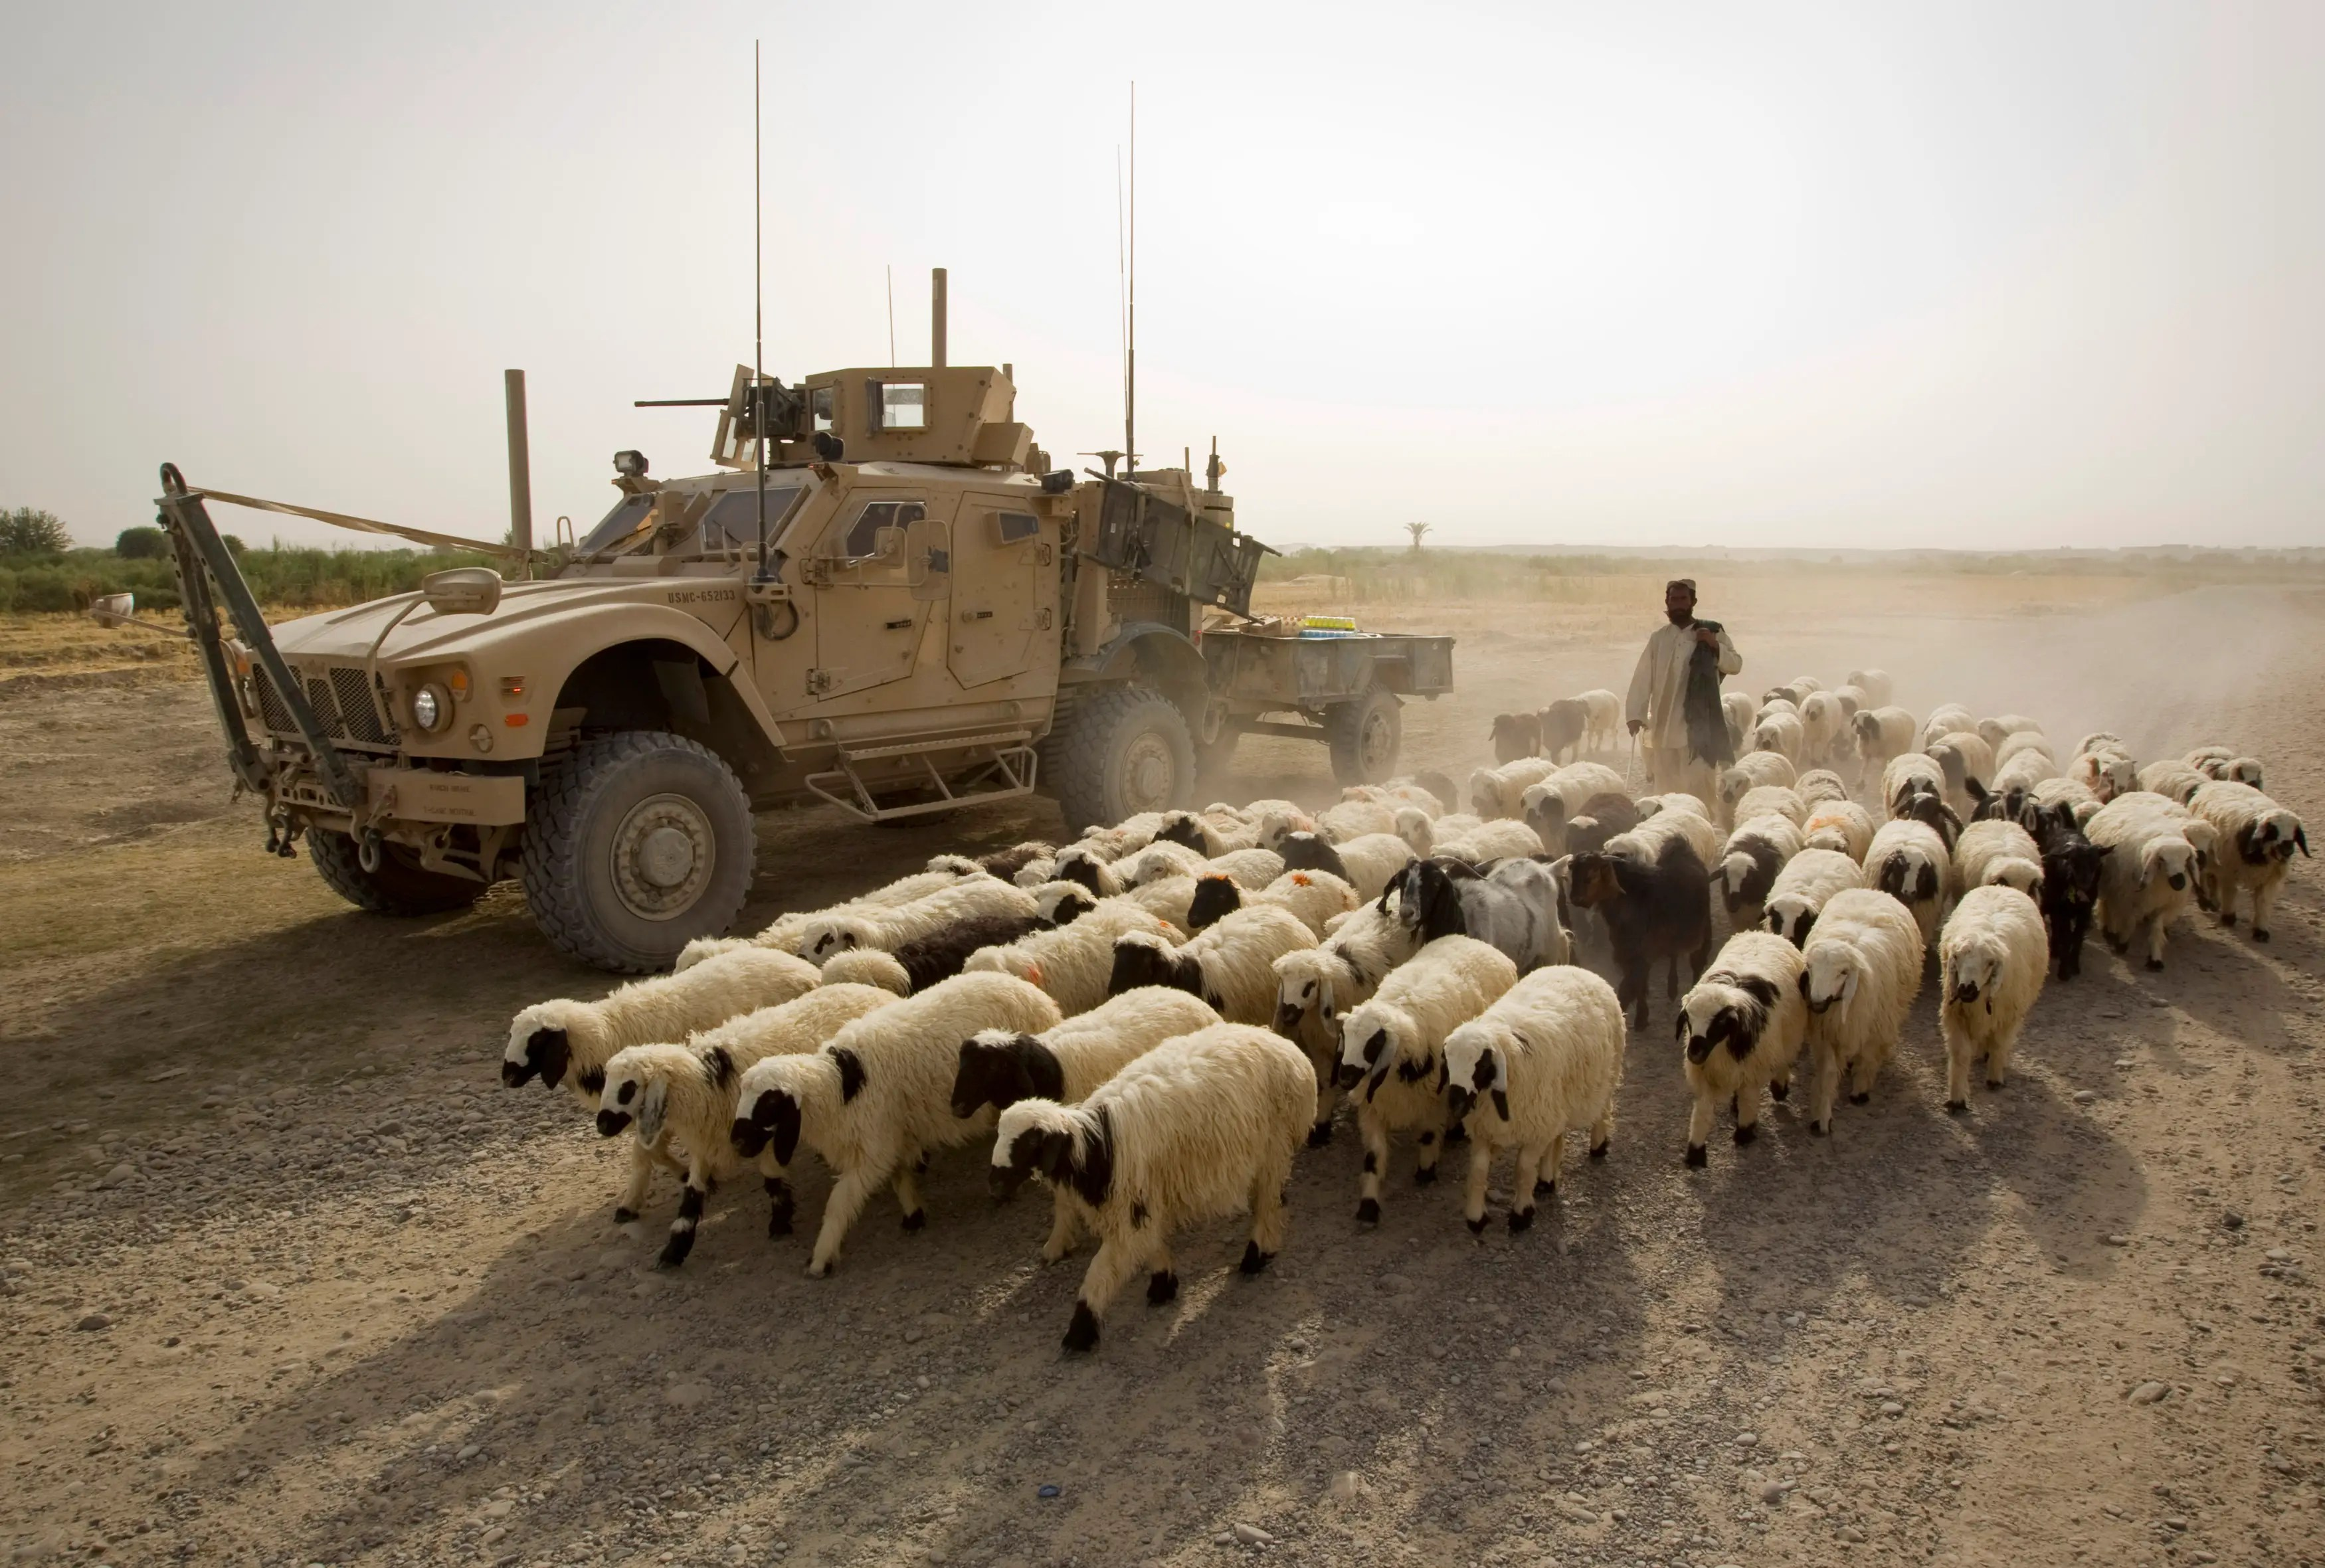 An Afghan shepherd walks with a flock of sheep past a US Marines armored vehicle outside the Camp Gorgak in Helmand province, southern Afghanistan, July 5, 2011.